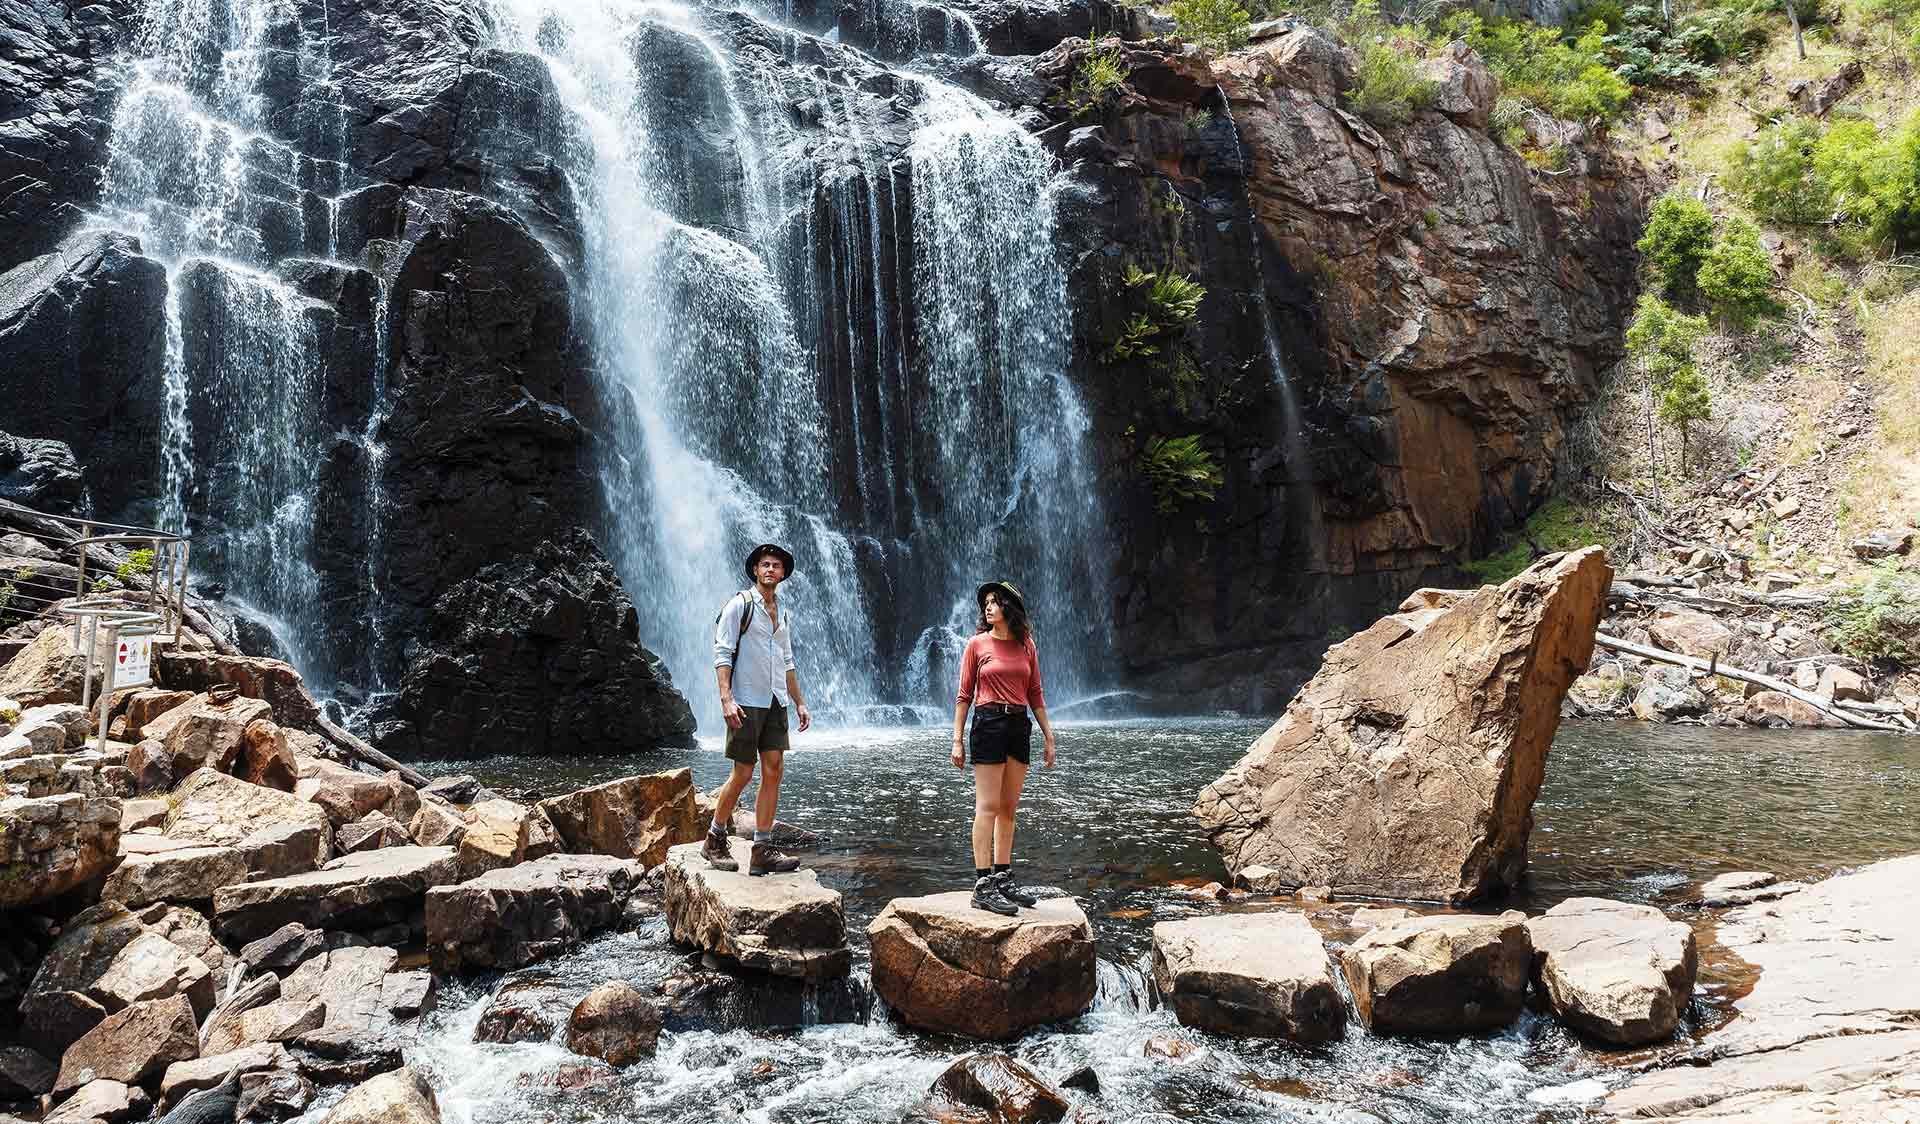 A young couple cross the stream on rocks in front a the spectacular MacKenzies Falls.